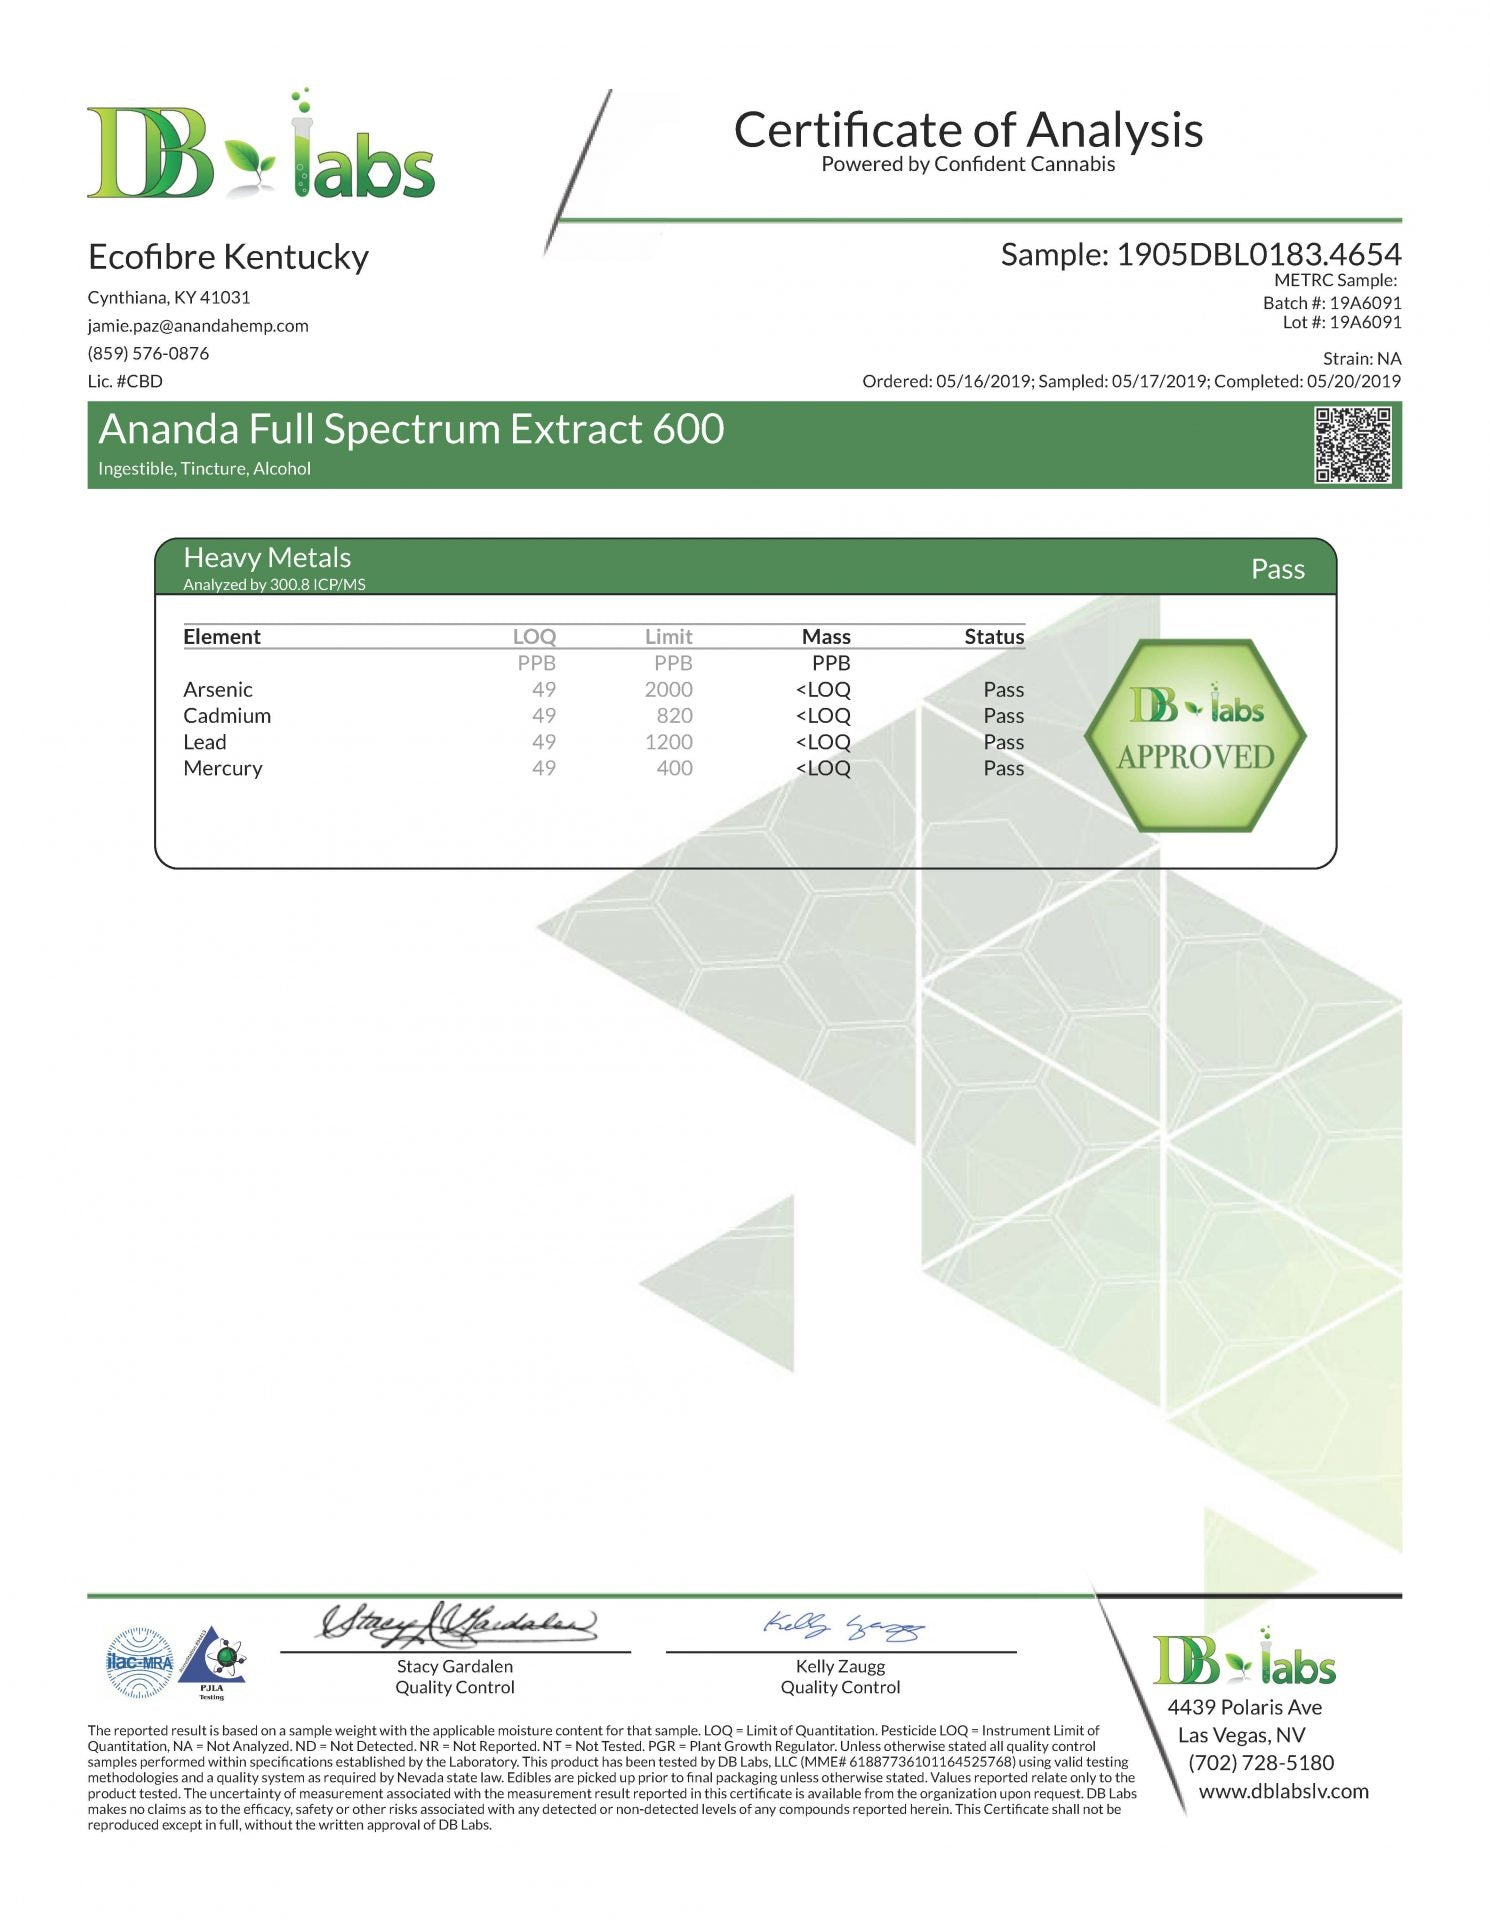 Ananda Hemp Certificate of Analysis for heavy metals testing